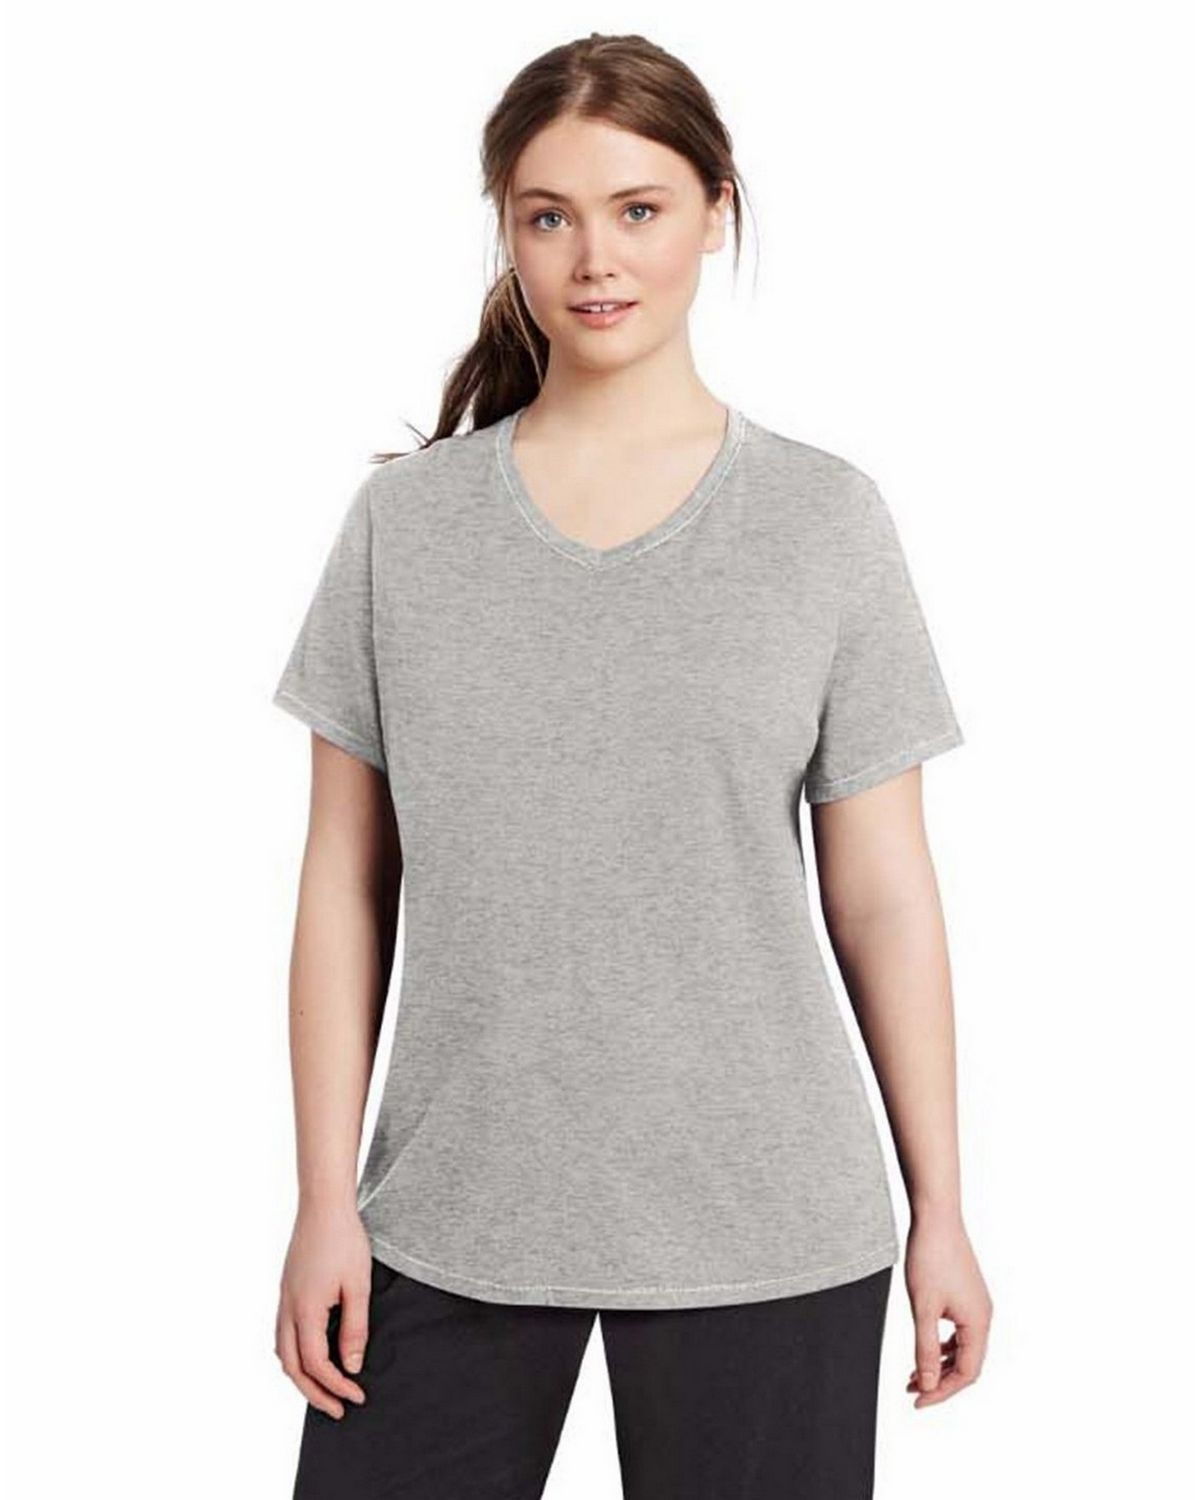 Champion QW1244 Womens Plus Jersey V-Neck - Oxford Grey - 1X QW1244